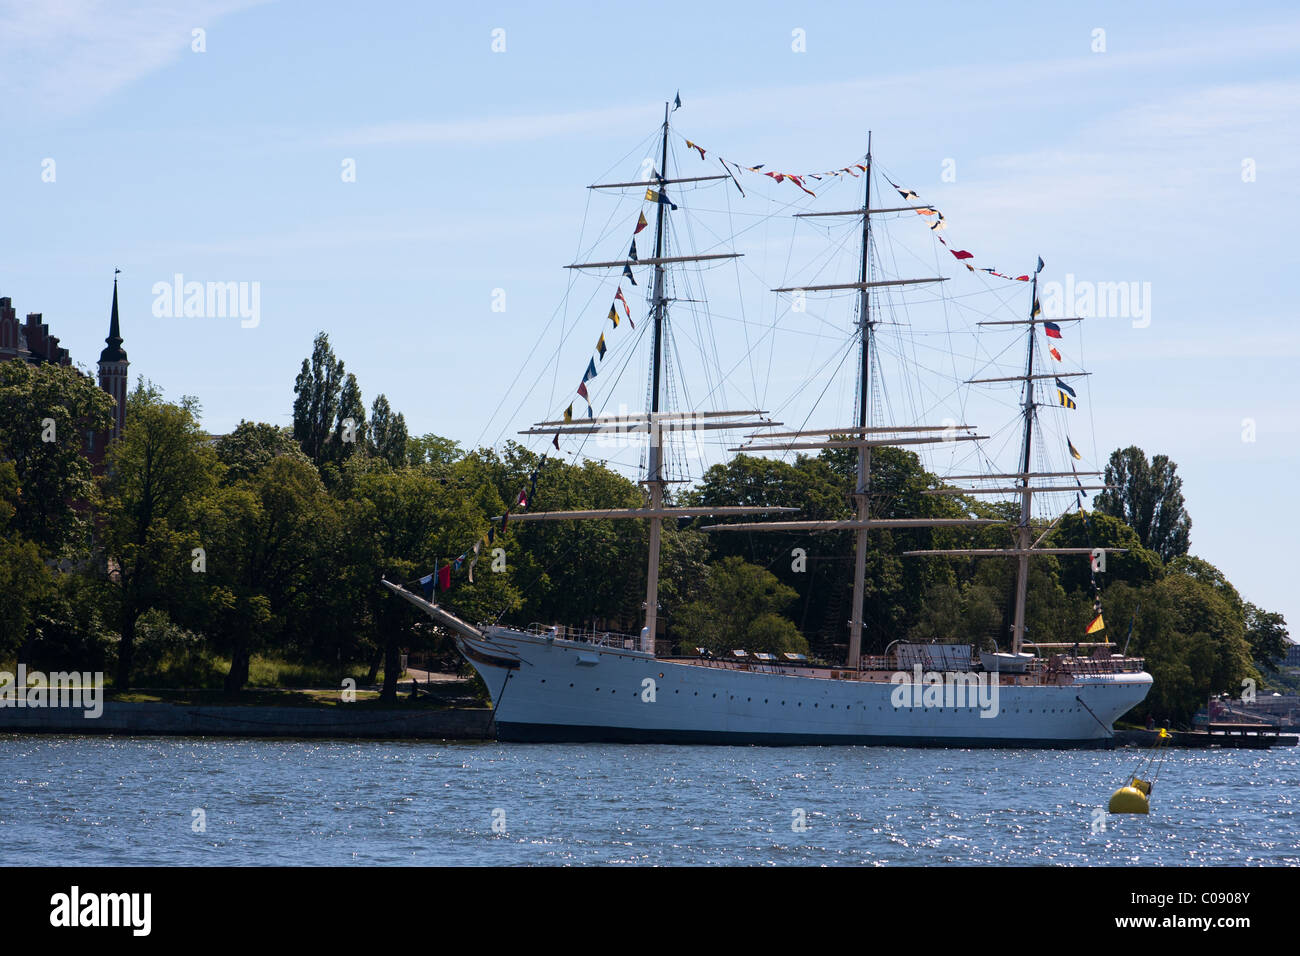 The AF Chapman, a square-rigged tall-ship that is moored at Skeppsholmen in the harbor in Stockholm, Sweden. - Stock Image